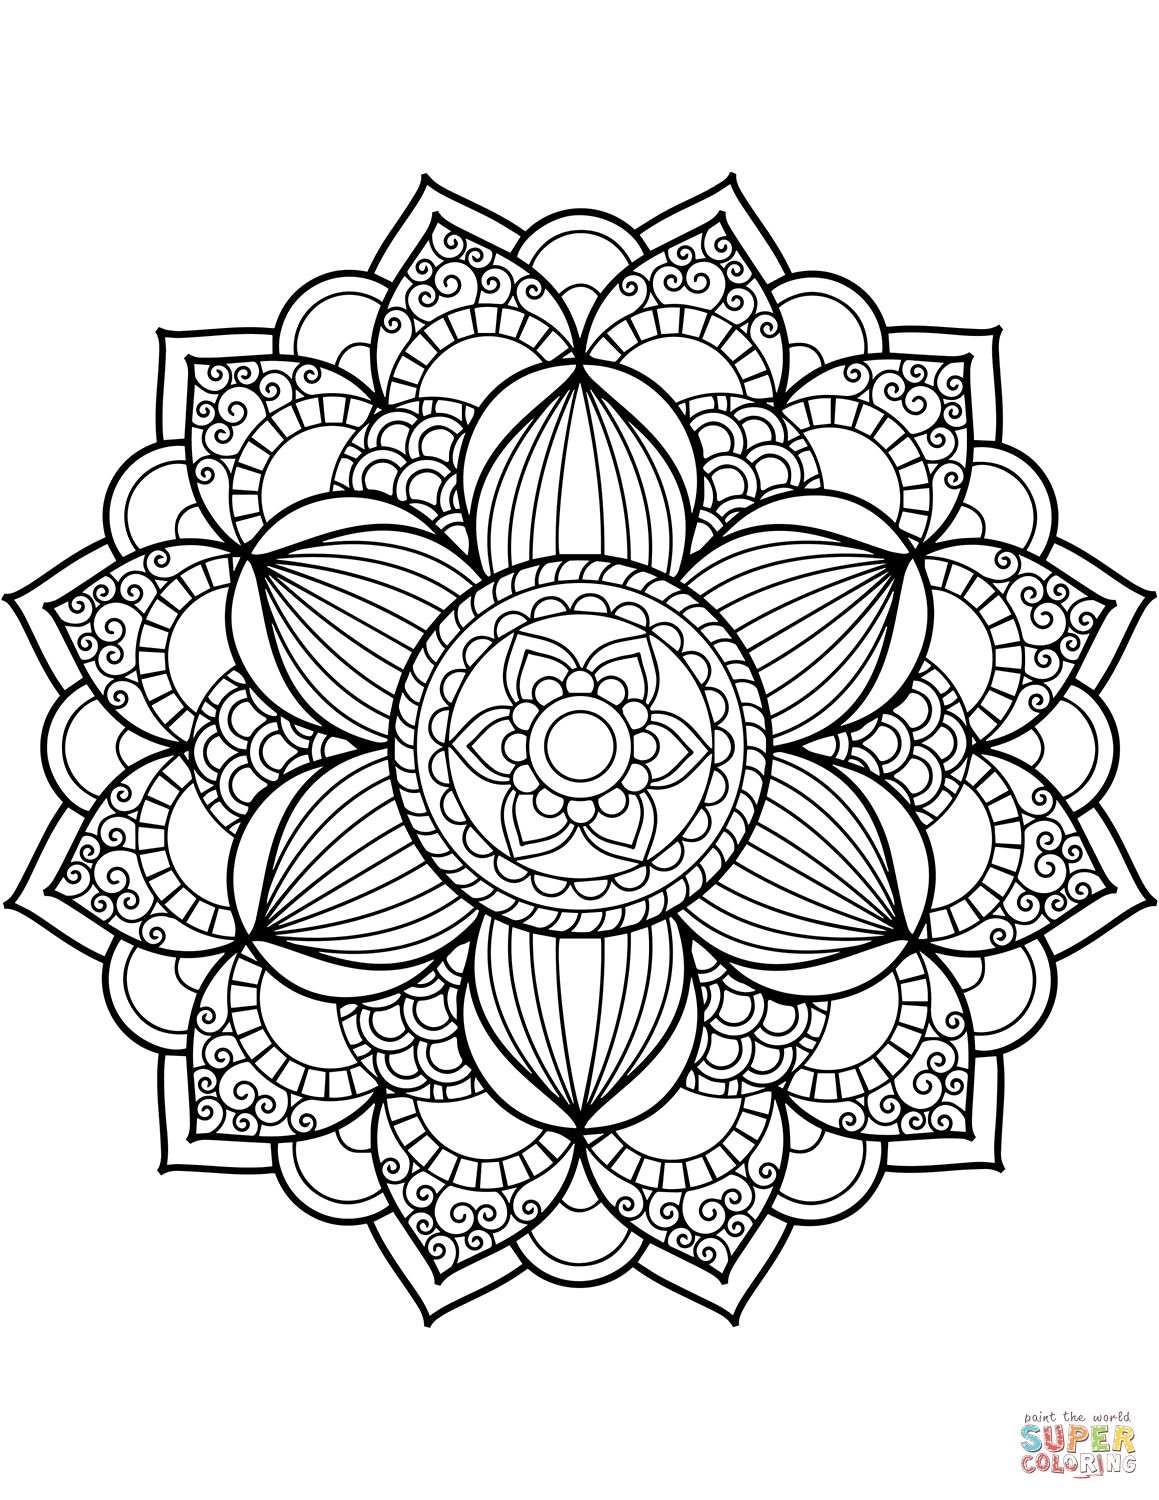 1159x1500 Free Printable Mandala Coloring Pages Large Transparent Png Within